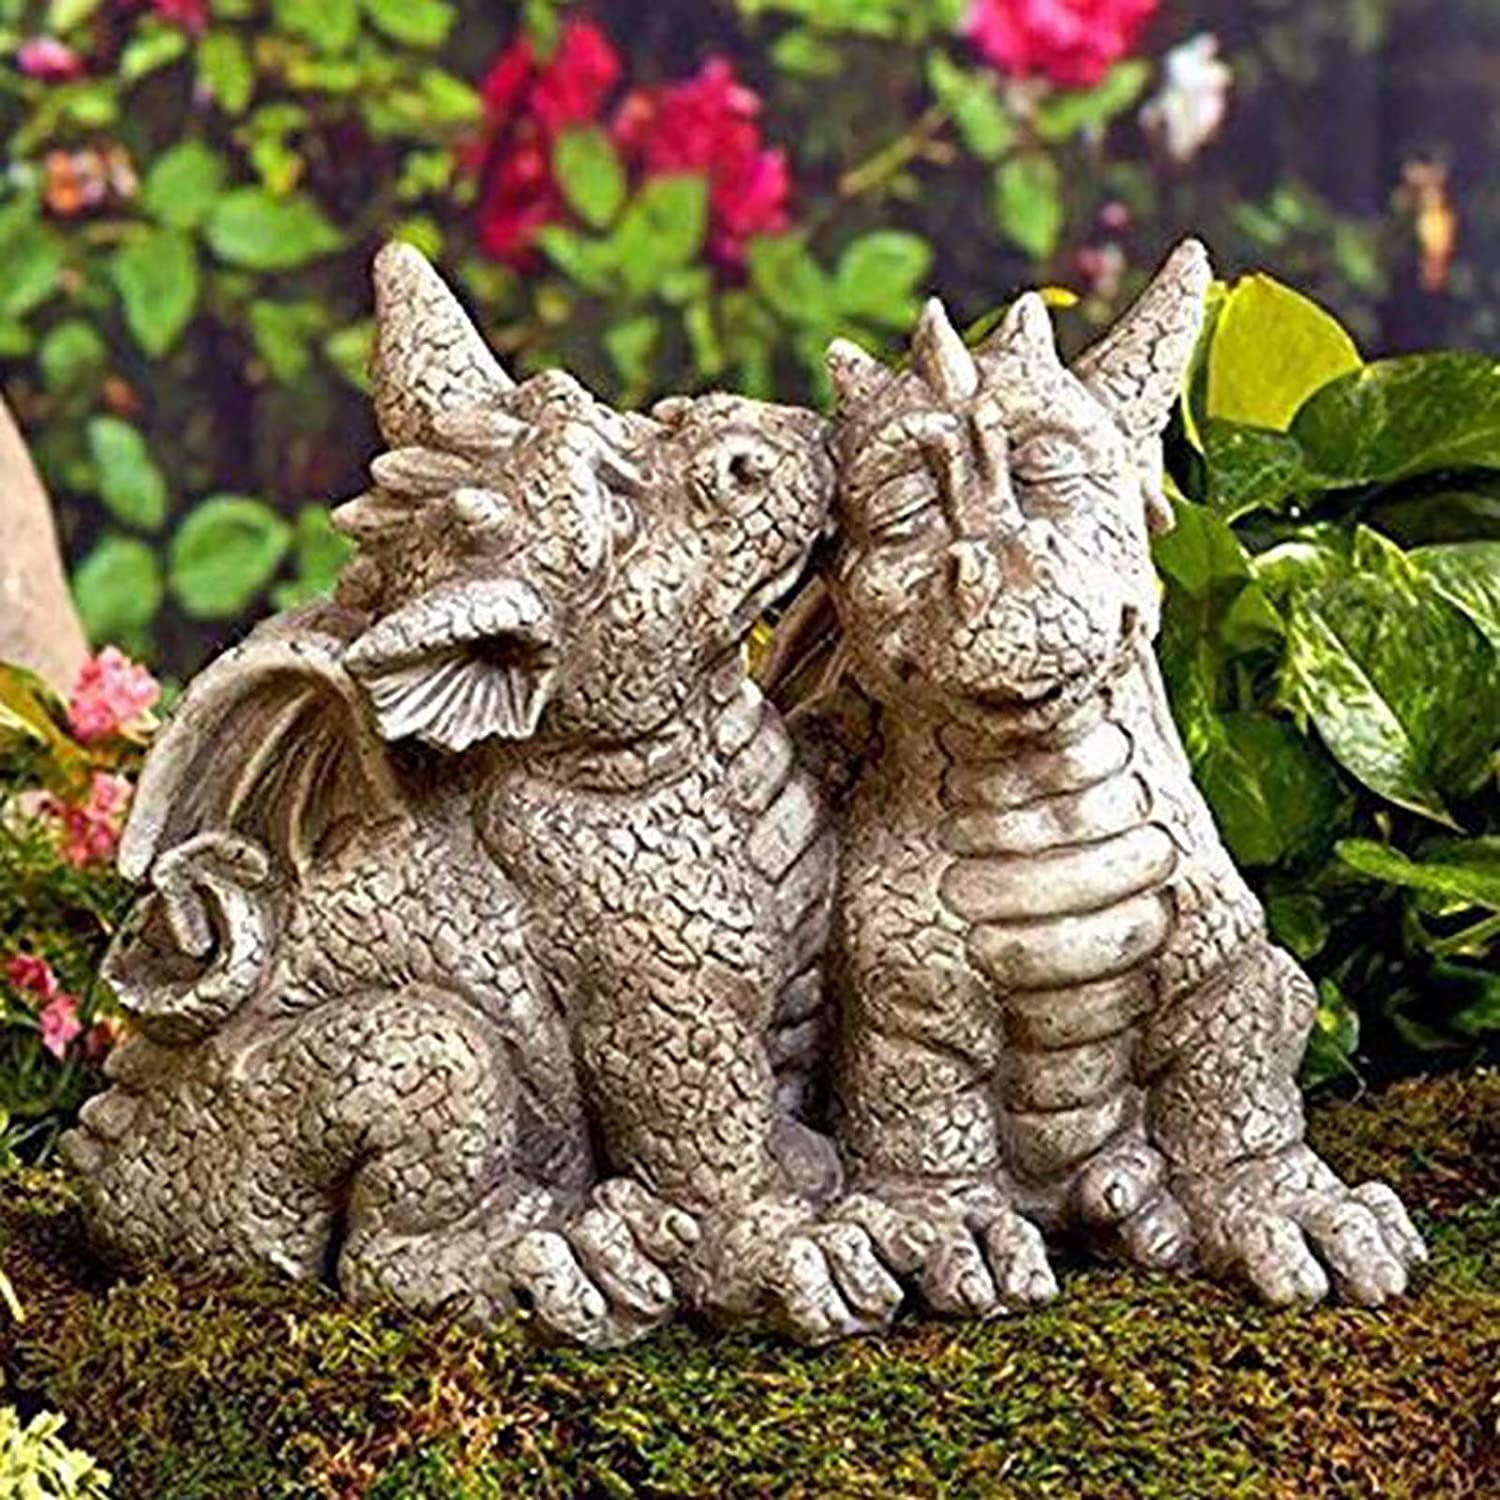 Nileco Whimsical Resin Outdoor Statue Yard Art Ornaments,Dragon Garden Statues,Animals Statues Cute Sleeping Dragon Sculptures for Home Decor Backyard Patio Lawn-C One Size